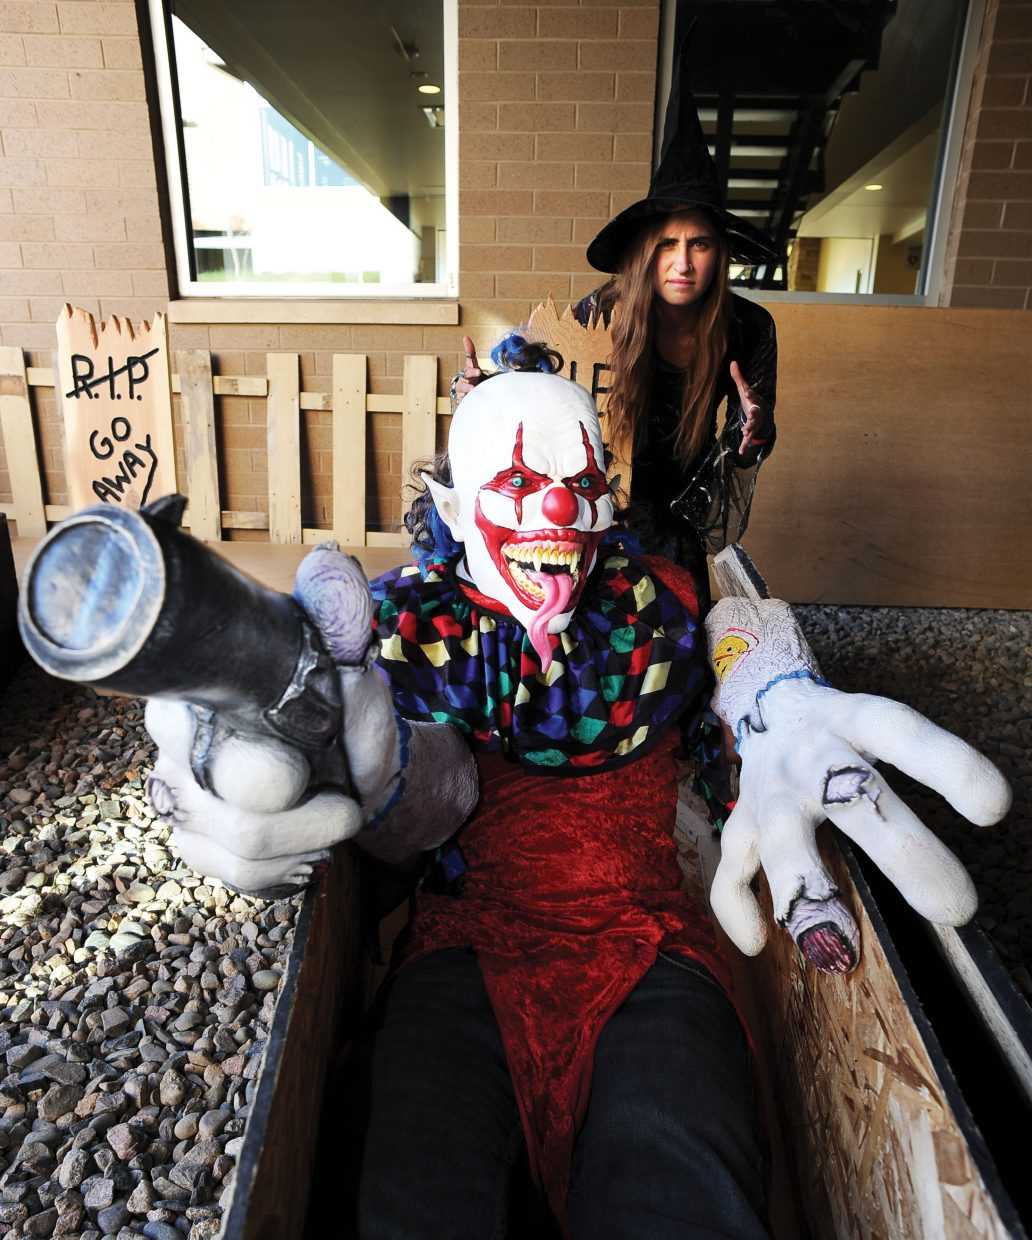 Spooky characters Caleb Gilmore and Belton Burke are ready to scare patrons who attend Screamboat Chamber of Horror at Colorado Mountain College this Halloween season. The haunted house will open from 6 to 10 p.m. Friday and Saturday and Oct. 30 and 31.